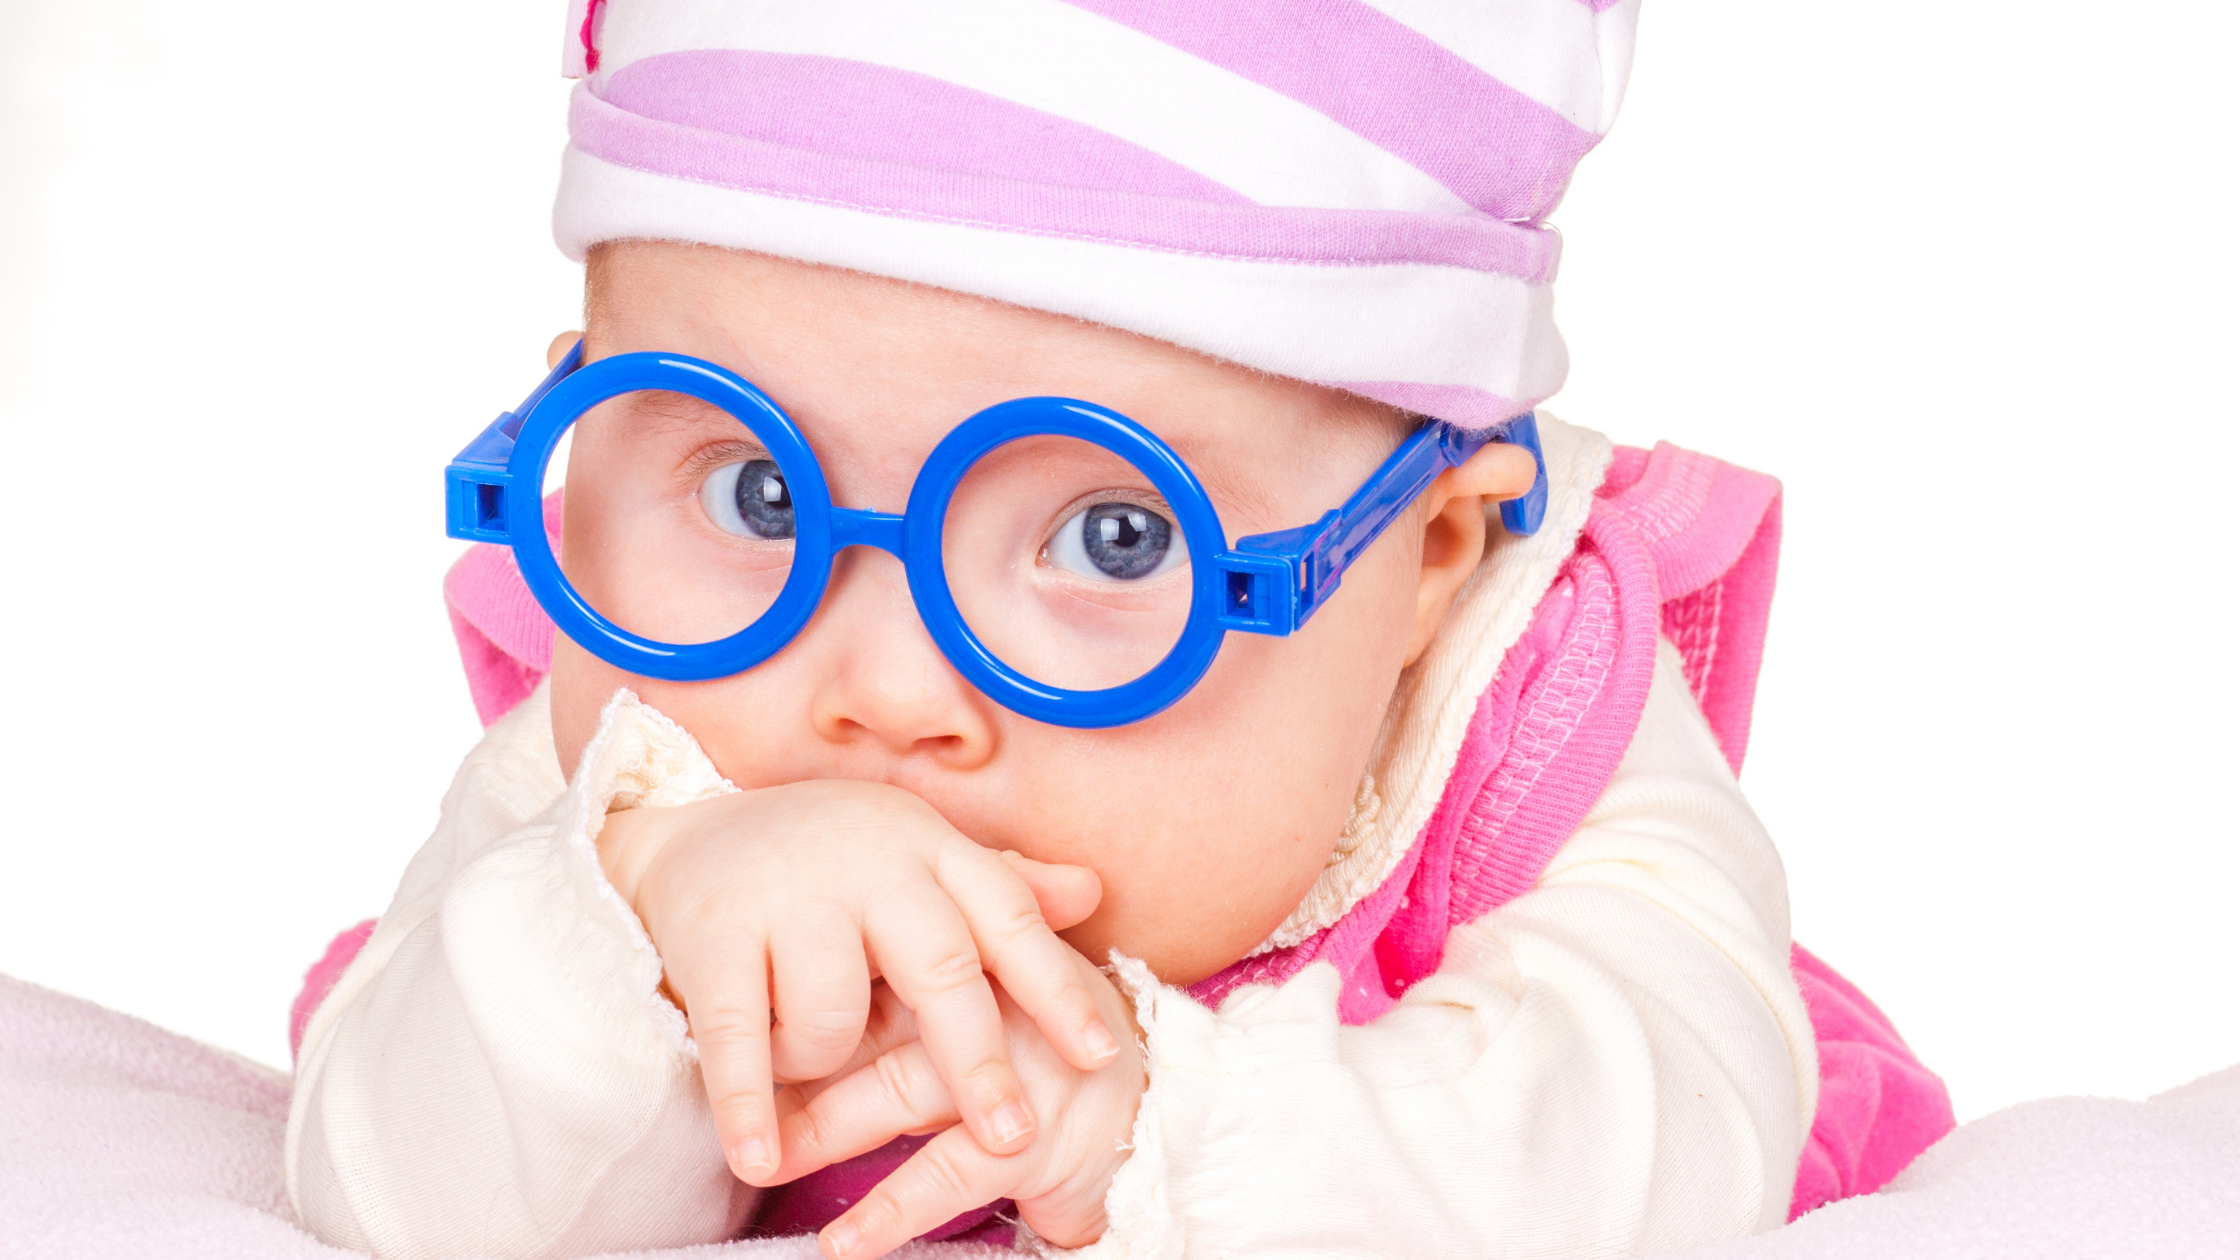 baby wearing blue glasses and a pink outfit